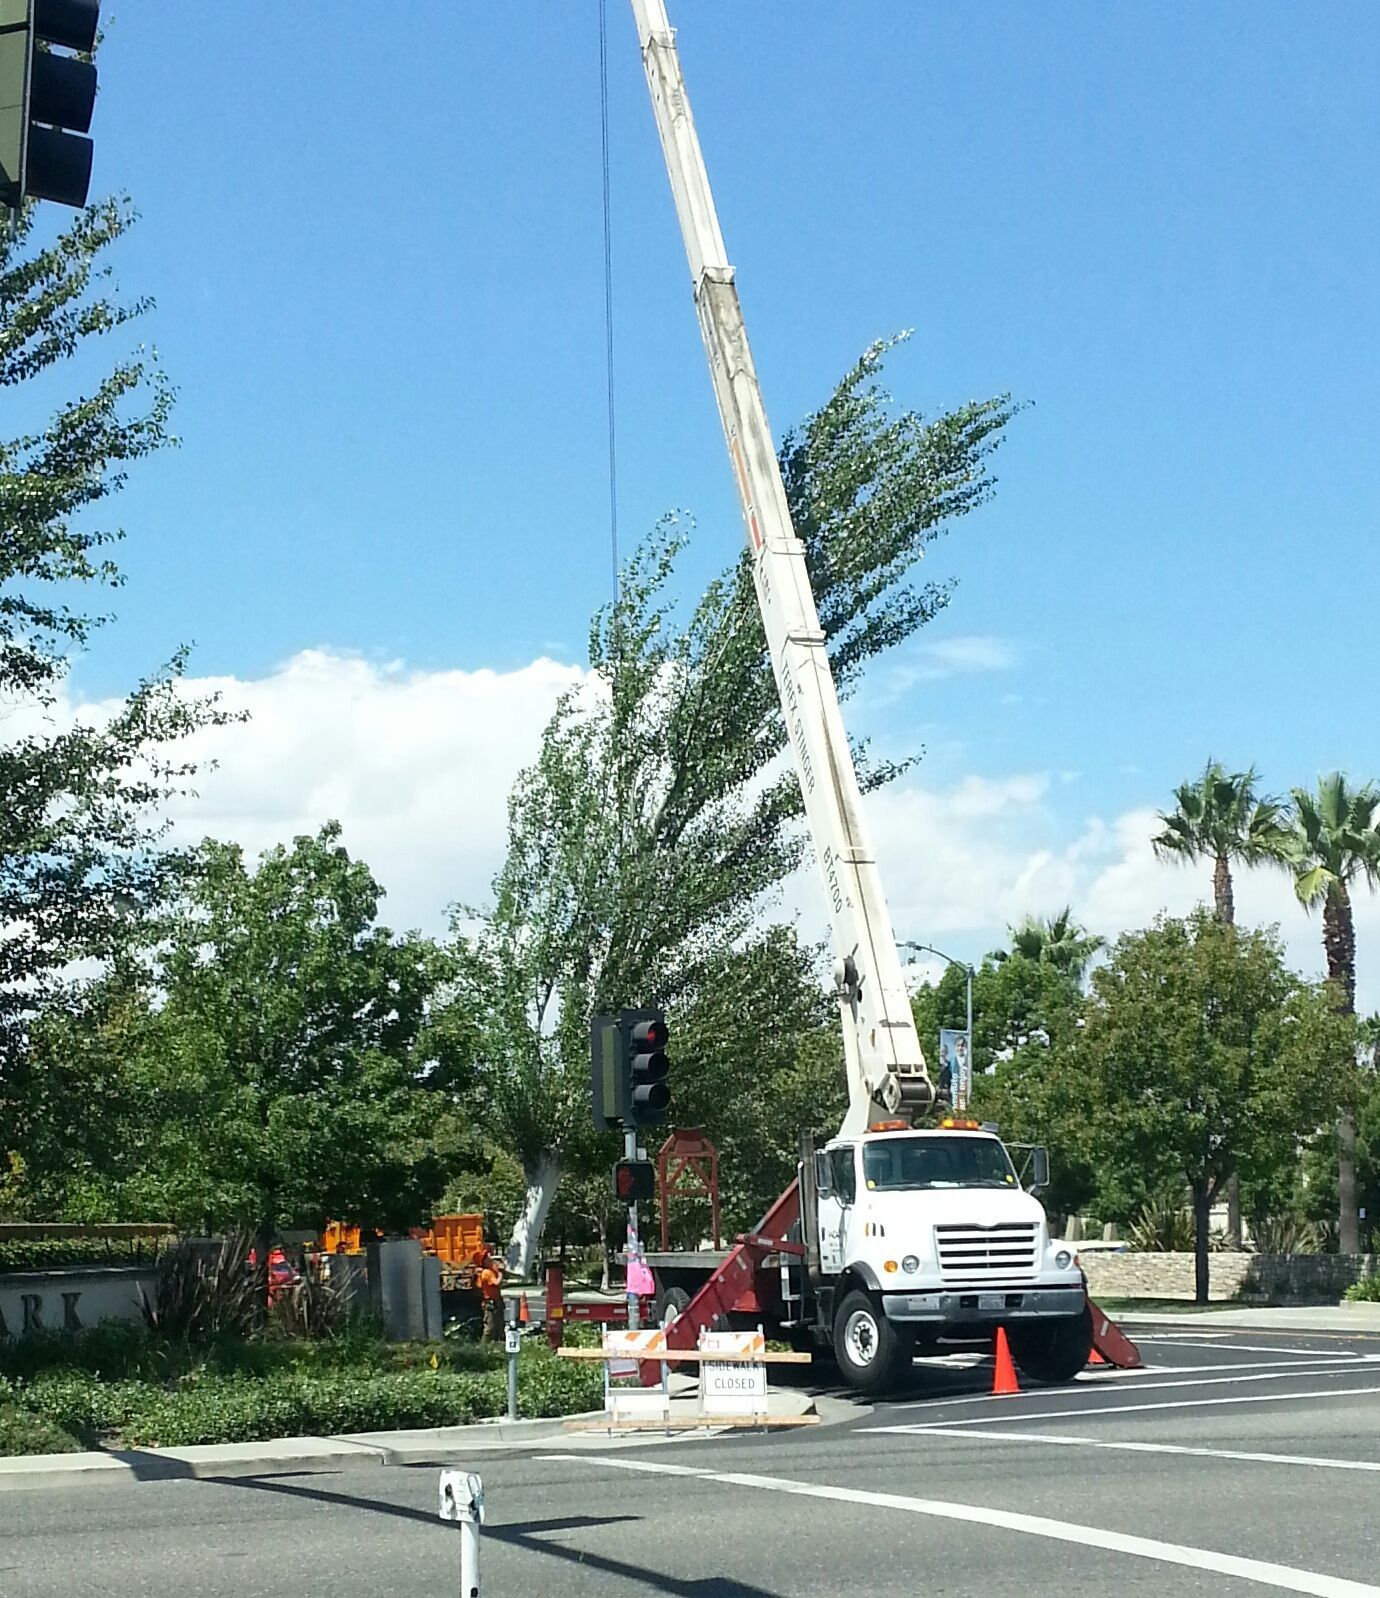 """Any idea why they have to remove the trees at Natomas Boulevard and Club Center Drive?"" Read the answer at: http://www.natomasbuzz.com/?p=8651"